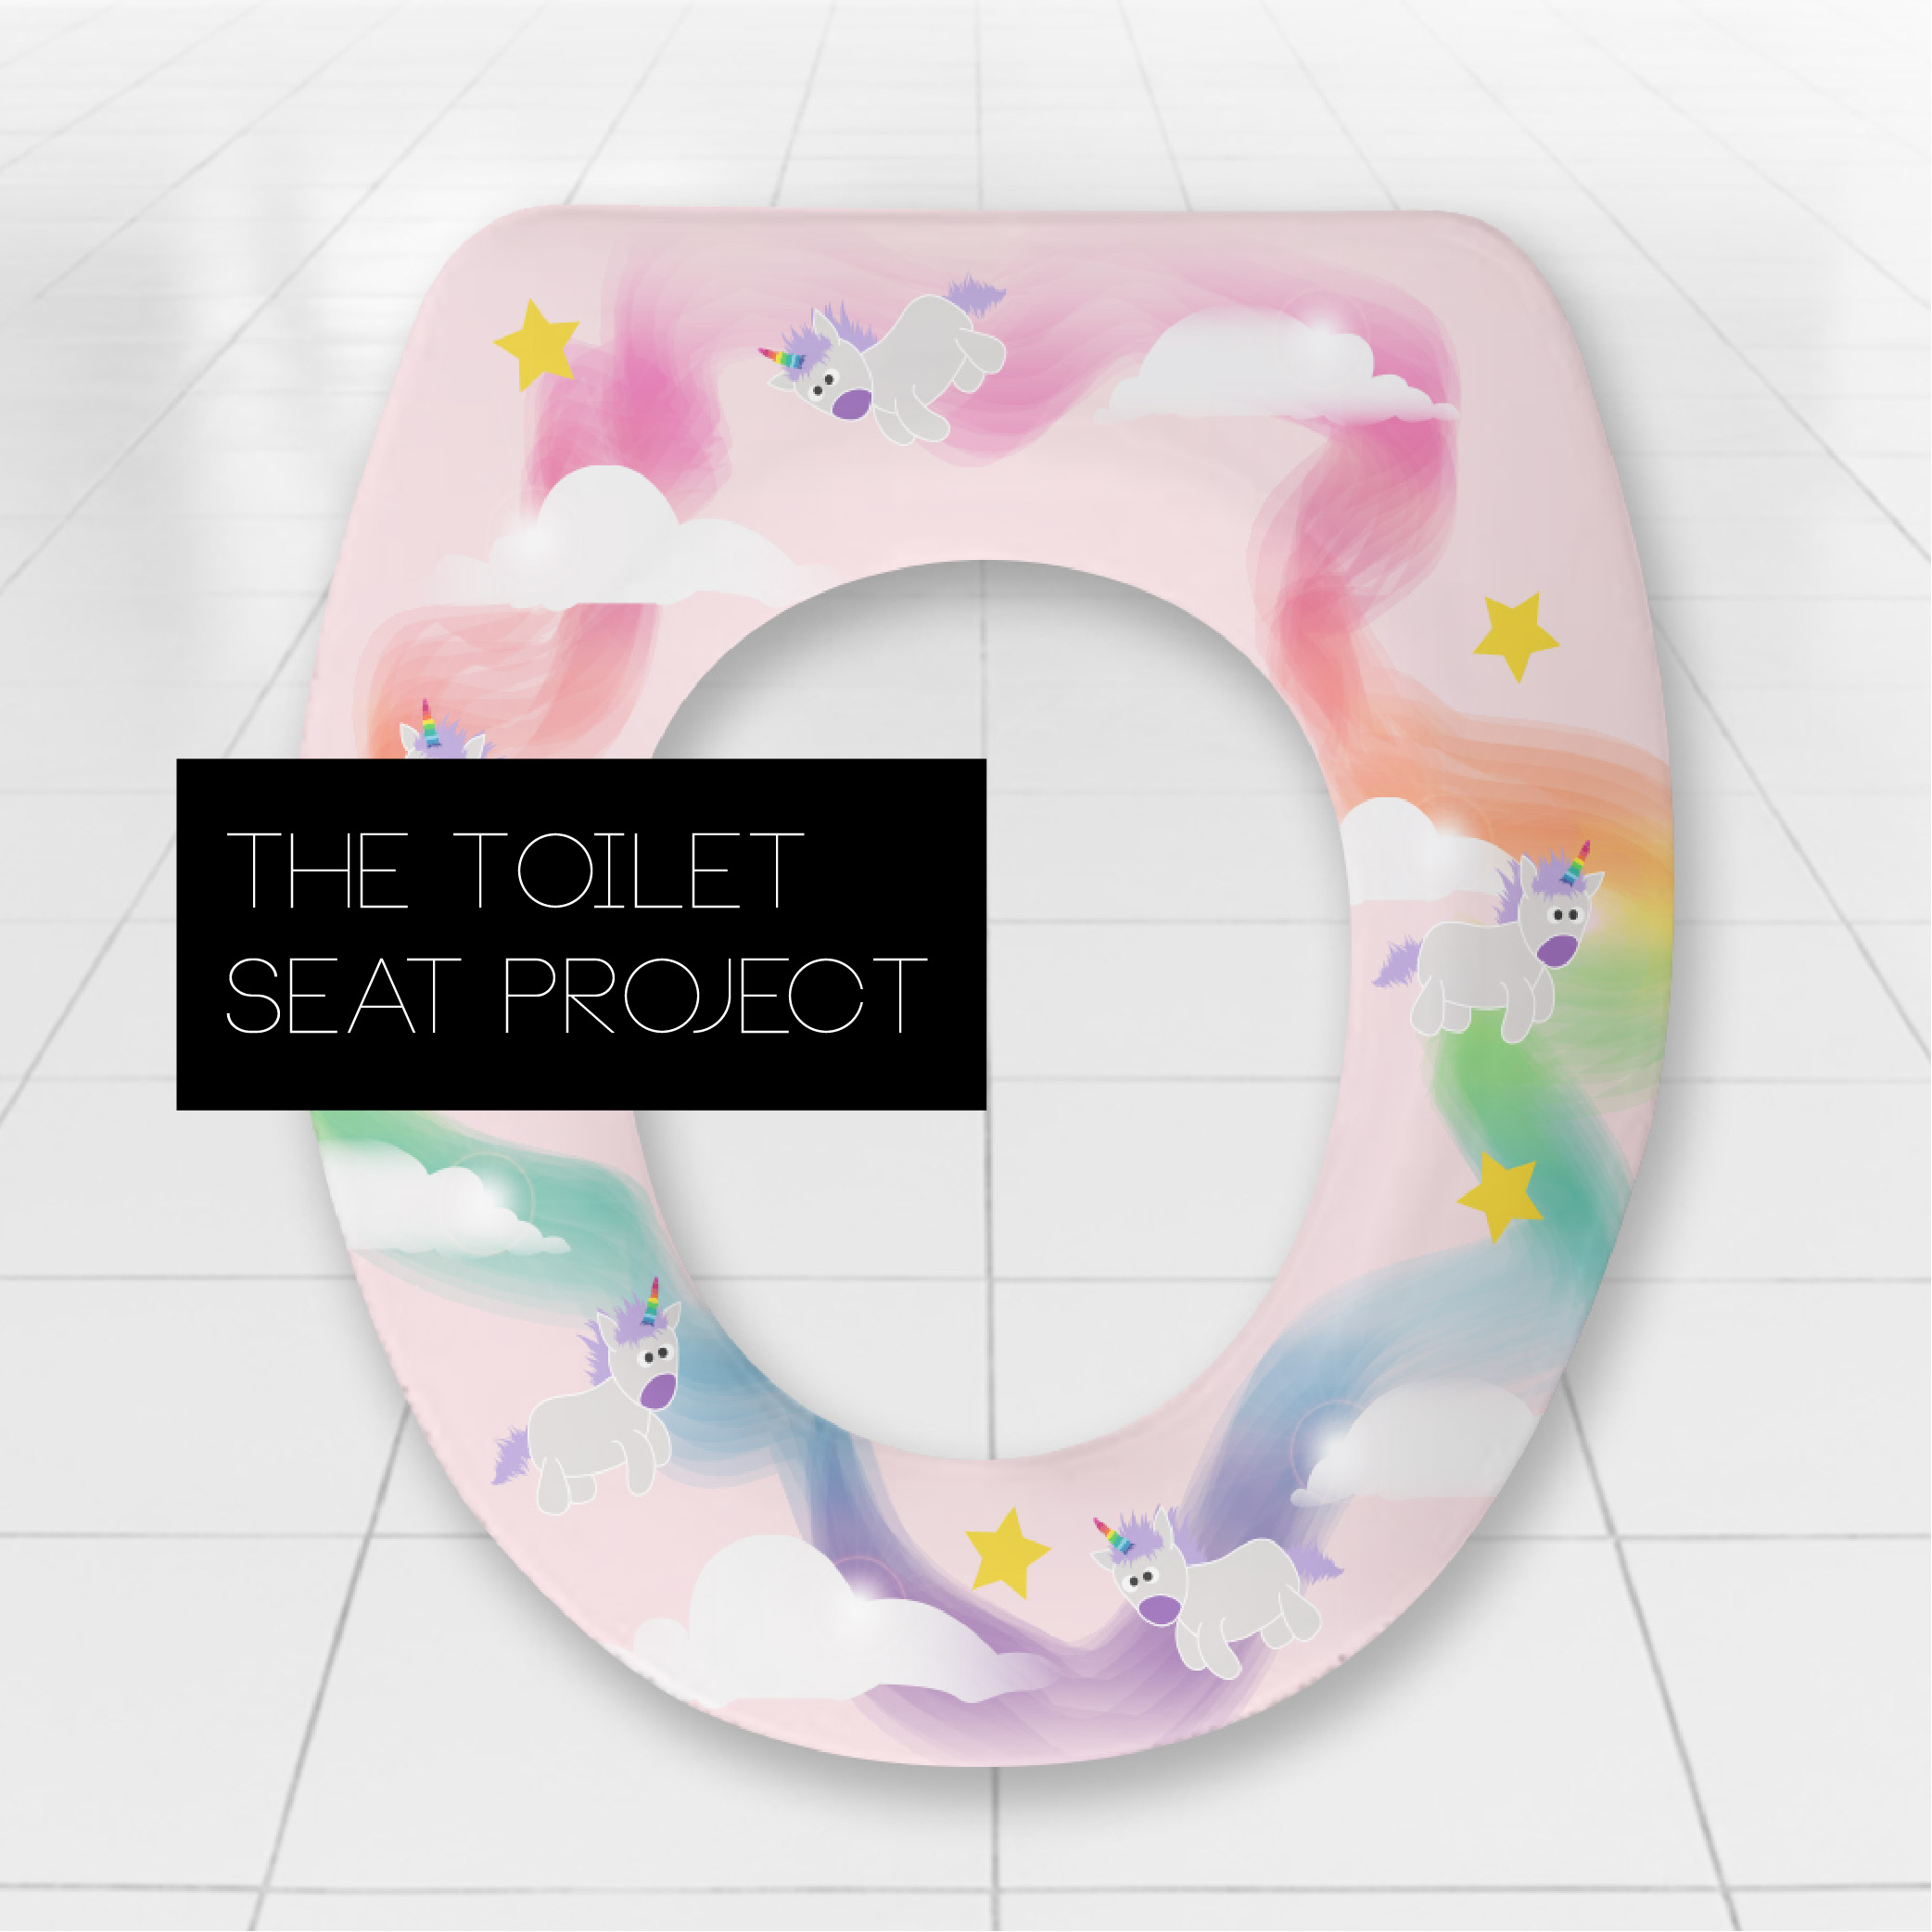 The Toilet Seat Project